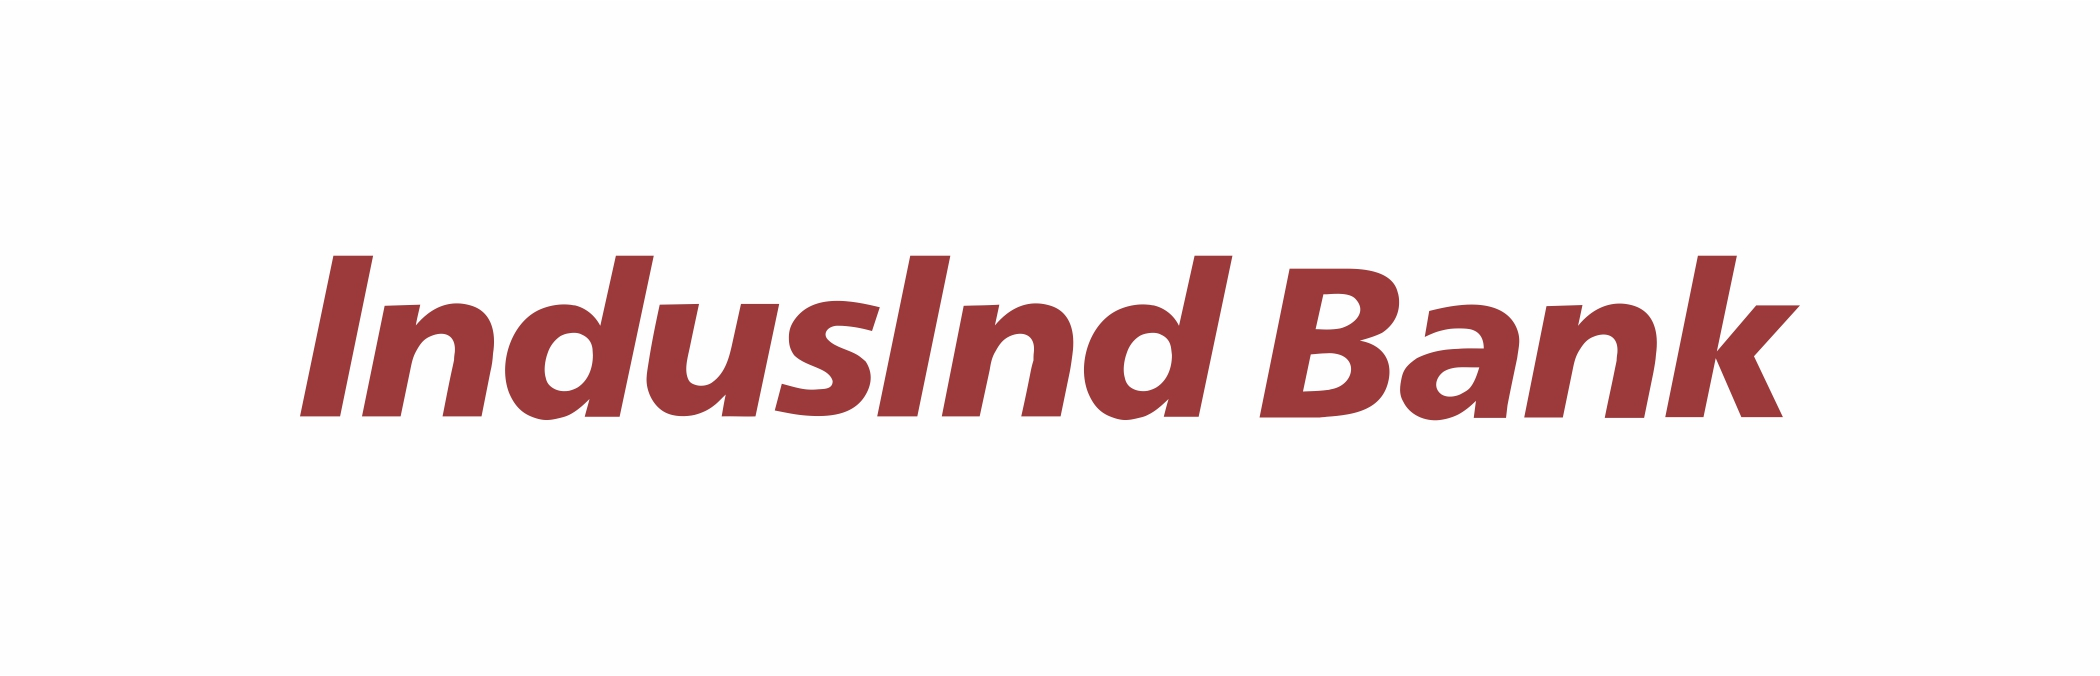 IndusInd Bank,GOA